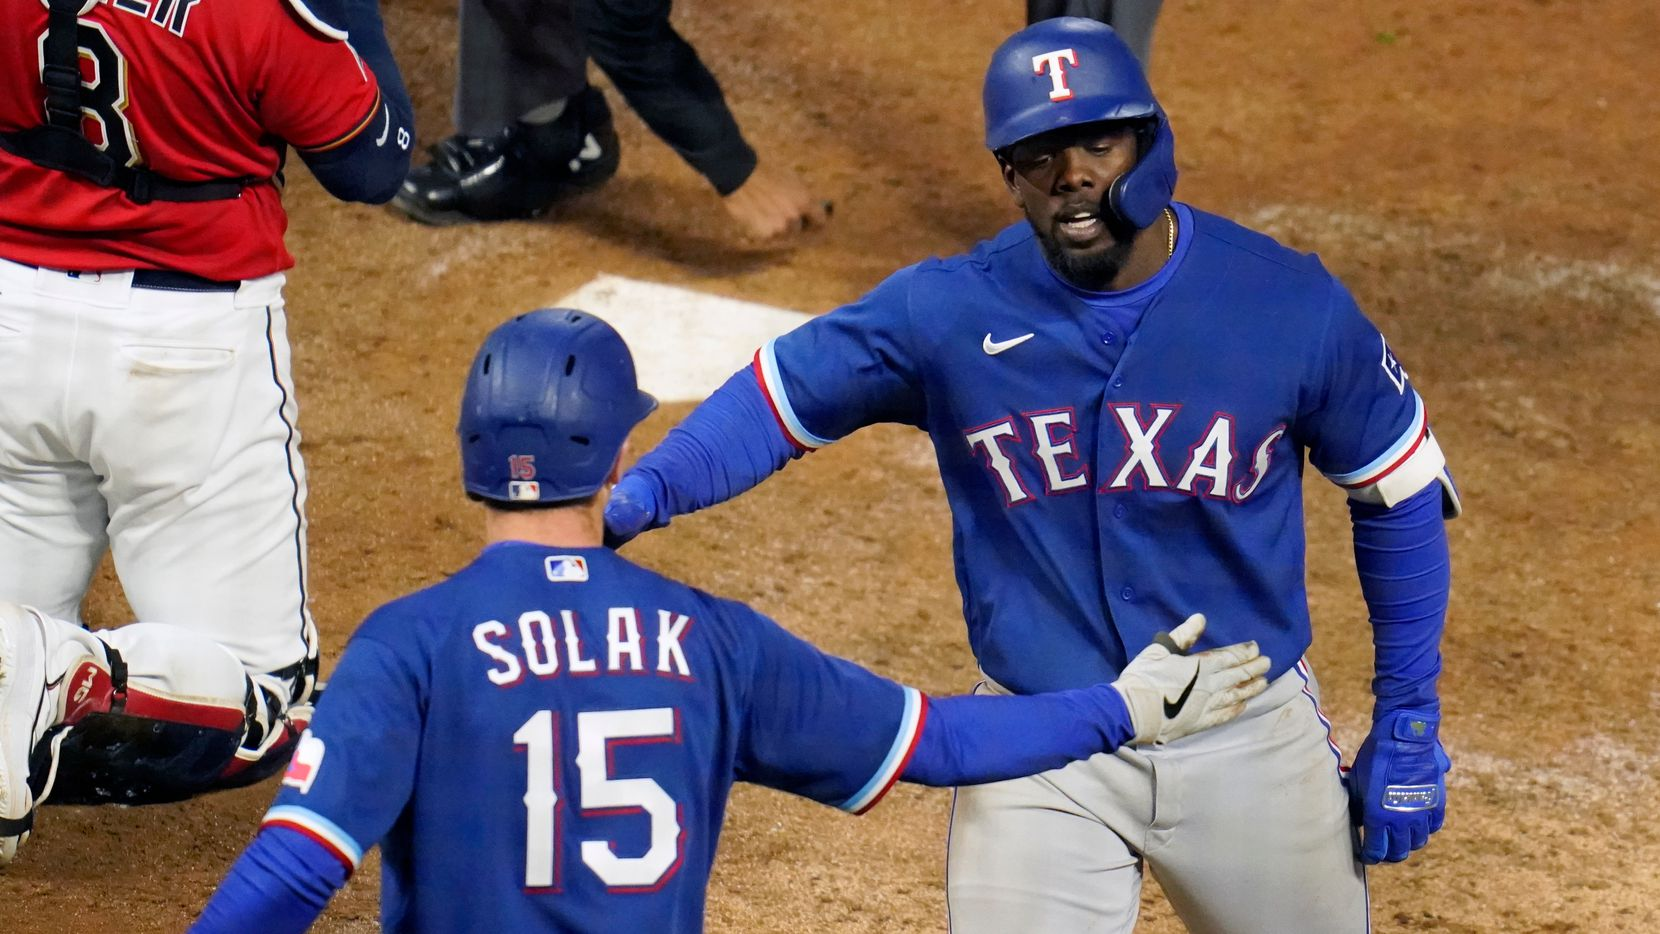 Texas Rangers' Adolis Garcia, right, is congratulated by Nick Solak after Garcia's two-run home run off Minnesota Twins pitcher Brandon Waddell in the tenth inning of a baseball game, Tuesday, May 4, 2021, in Minneapolis. The Rangers won 6-3. (AP Photo/Jim Mone)